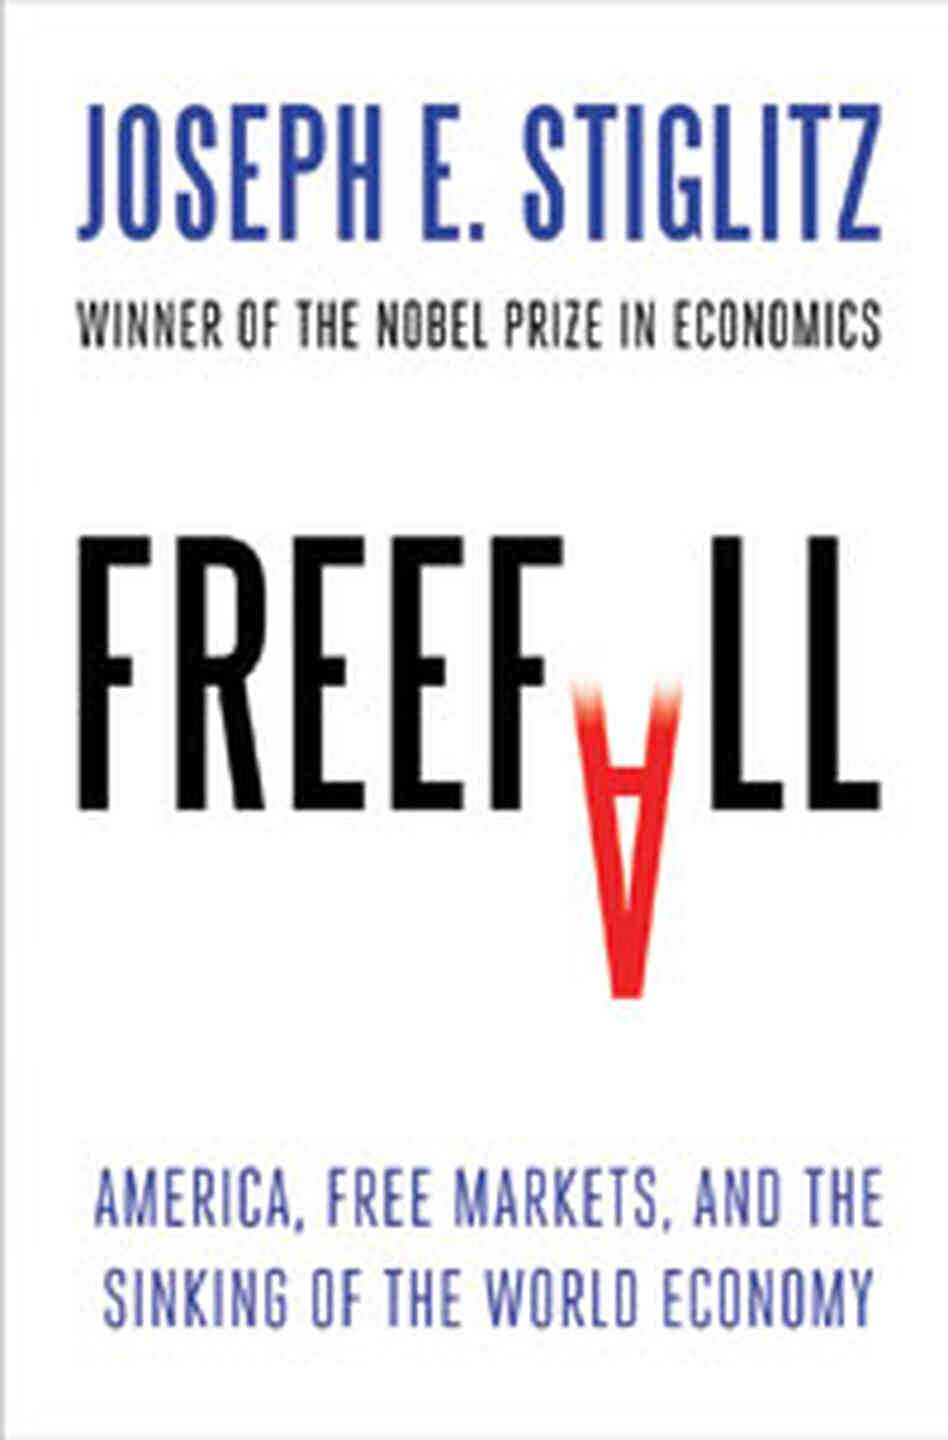 The cover of Freefall by Joseph Stiglitz